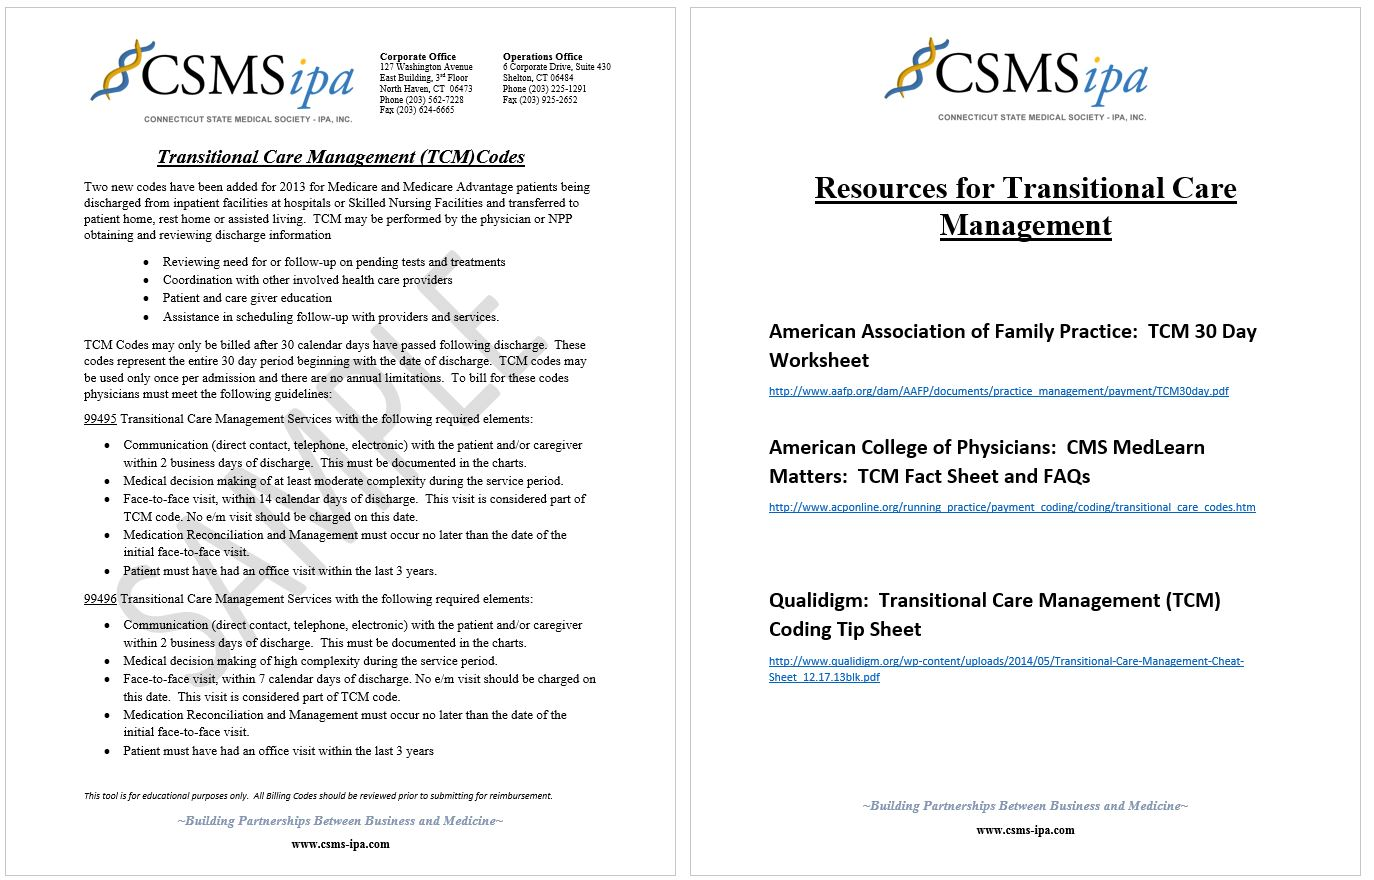 Transitional Care Management Worksheet